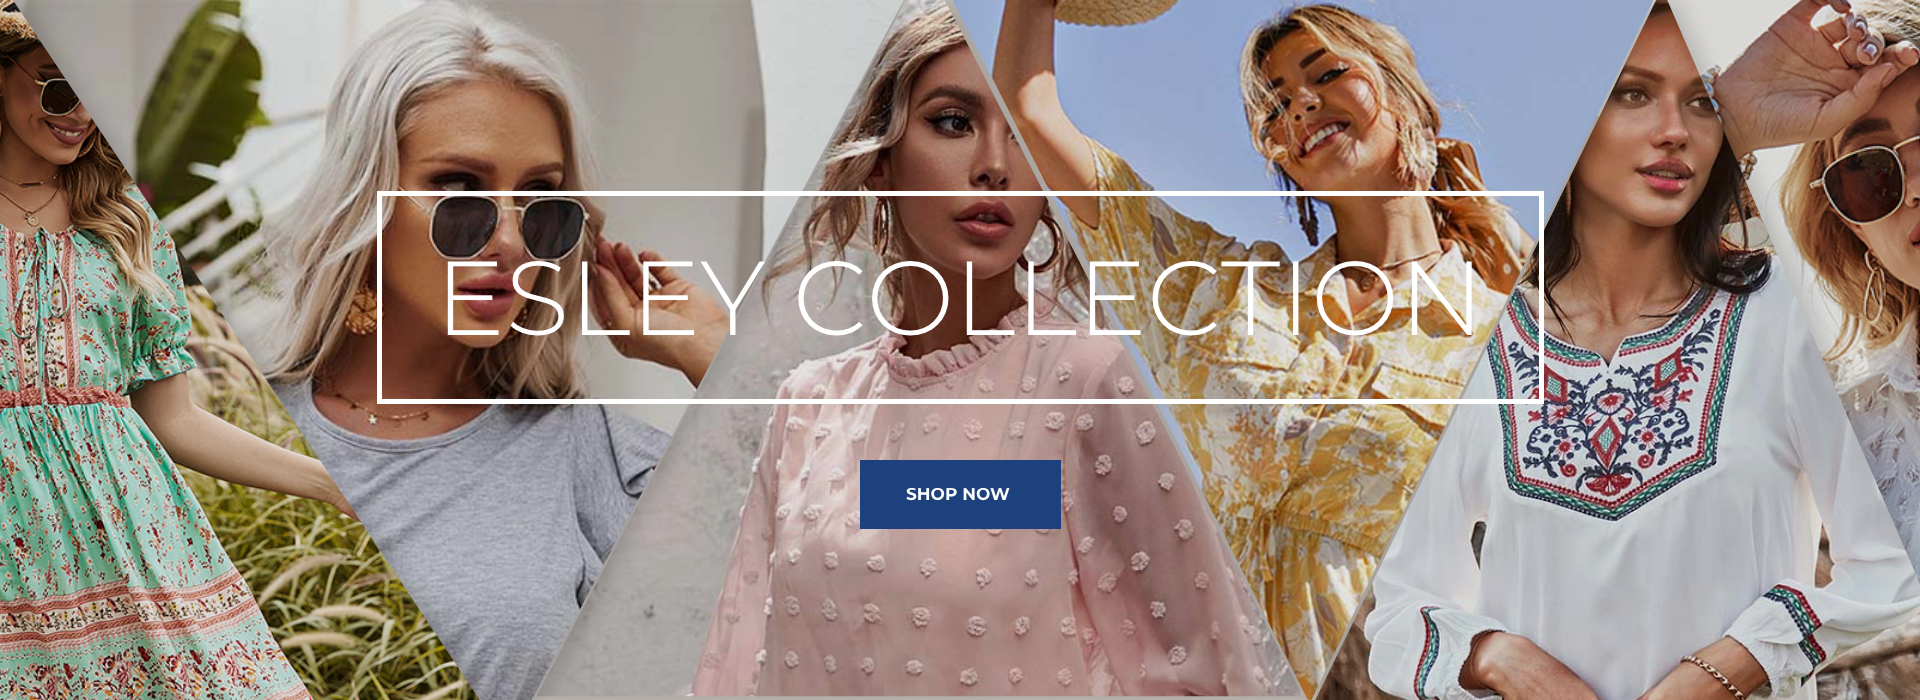 ESLEY COLLECTION